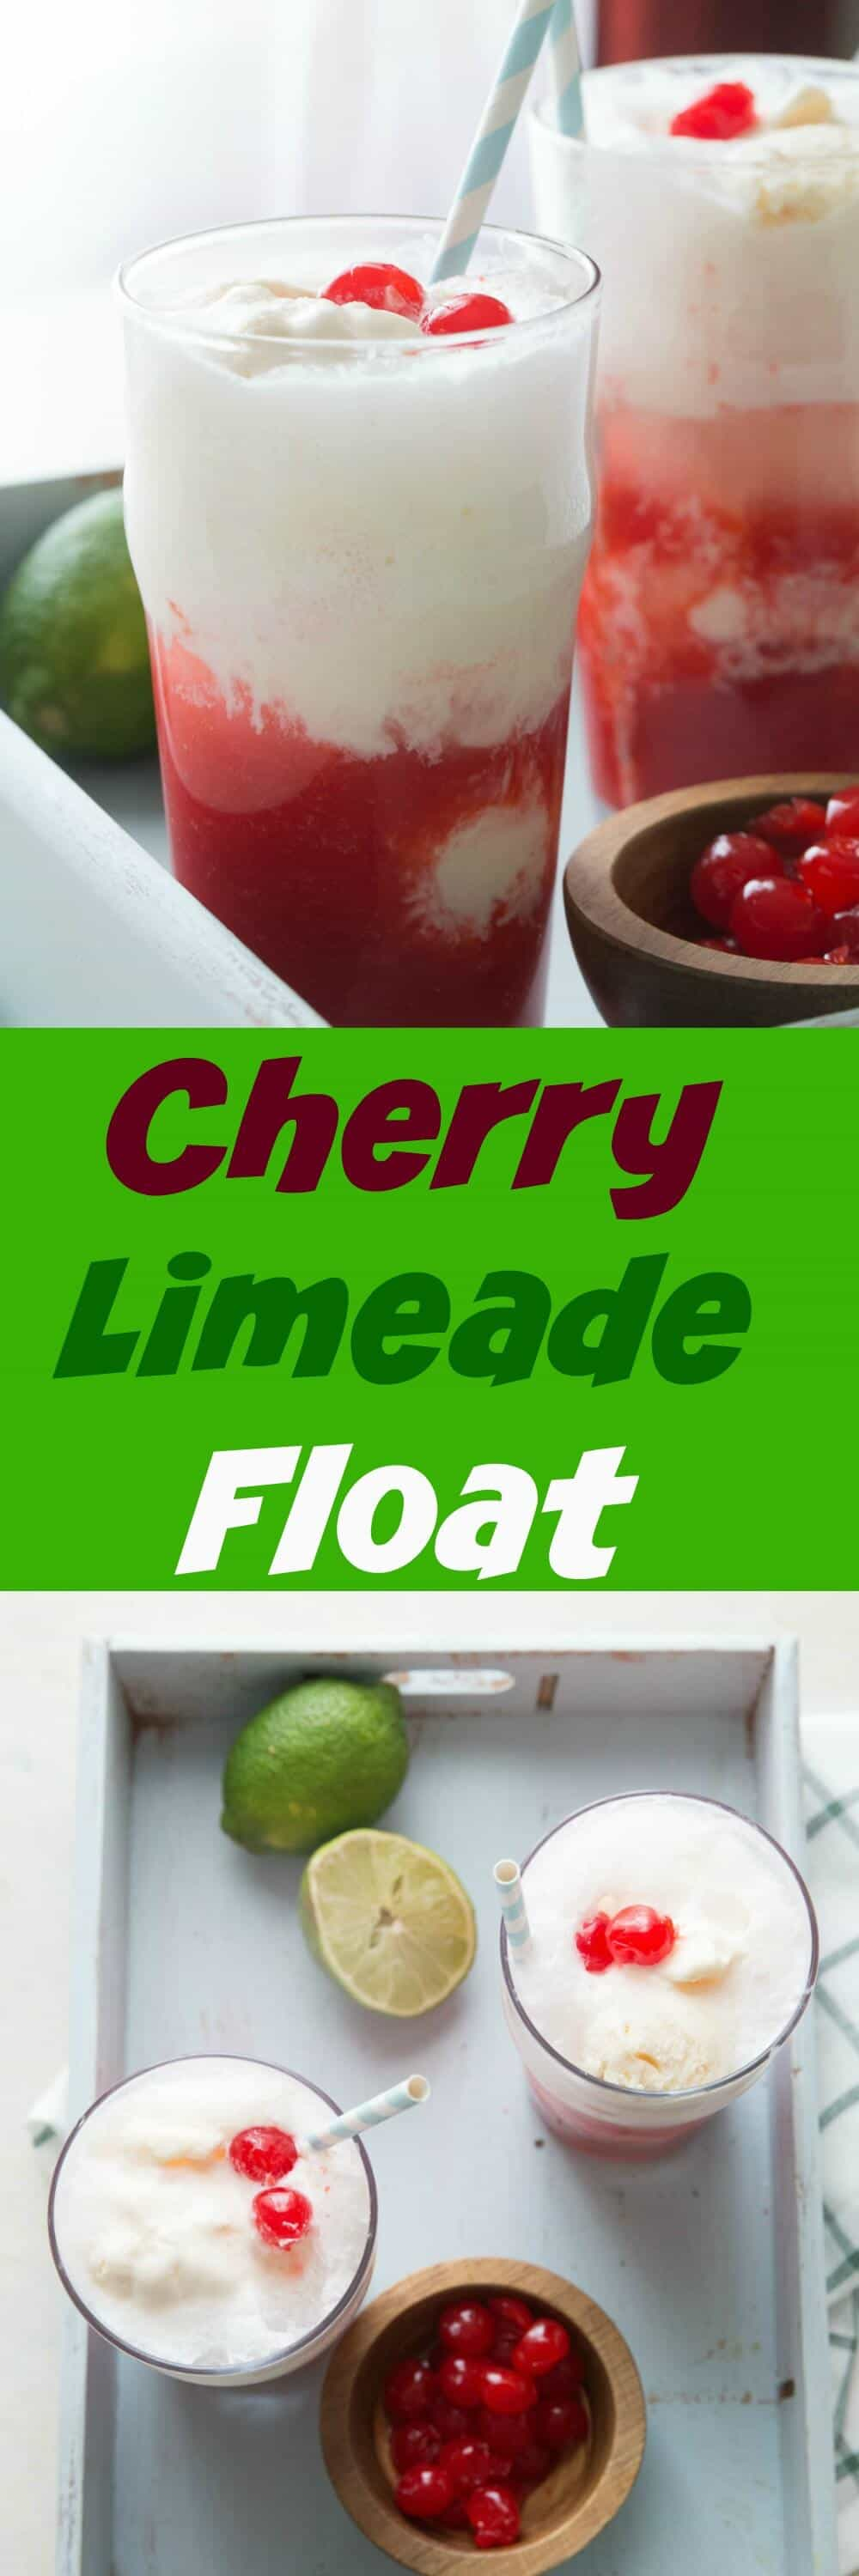 Ice cream floats are so fun!  Kids and adults are both going to love this sweet and tangy cherry limeade float!